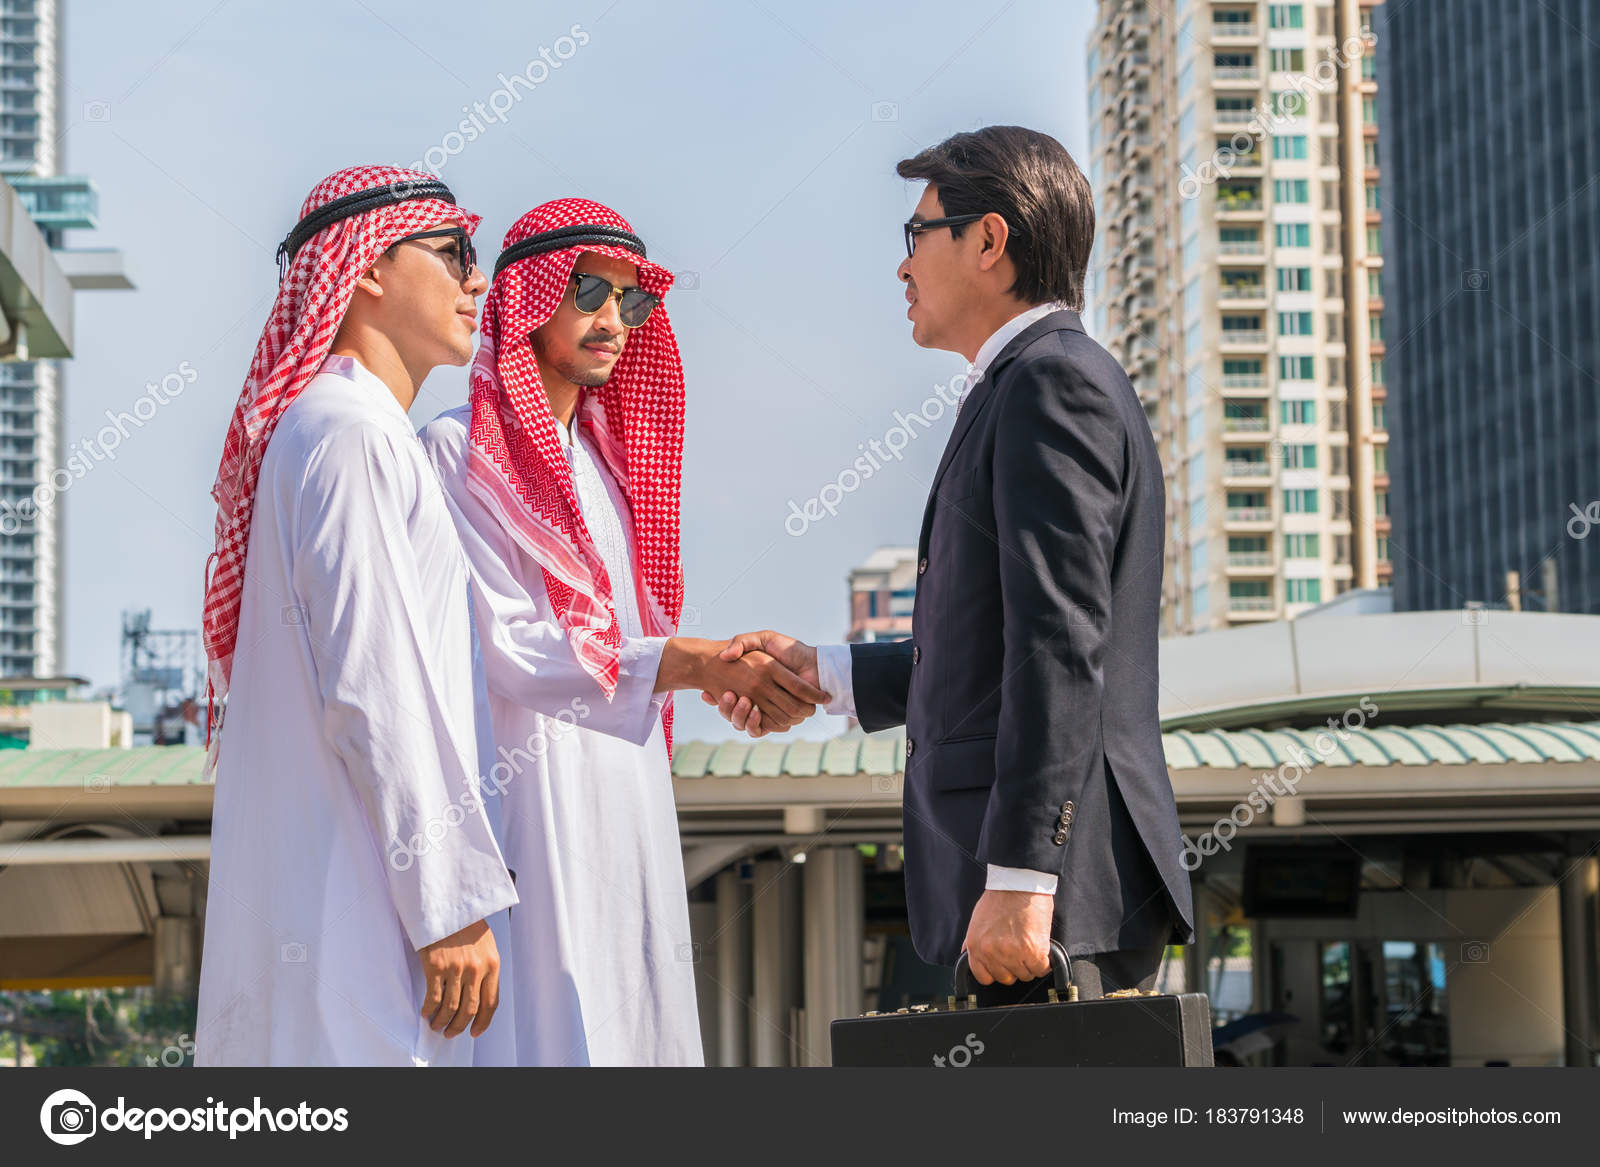 Are arabs asians